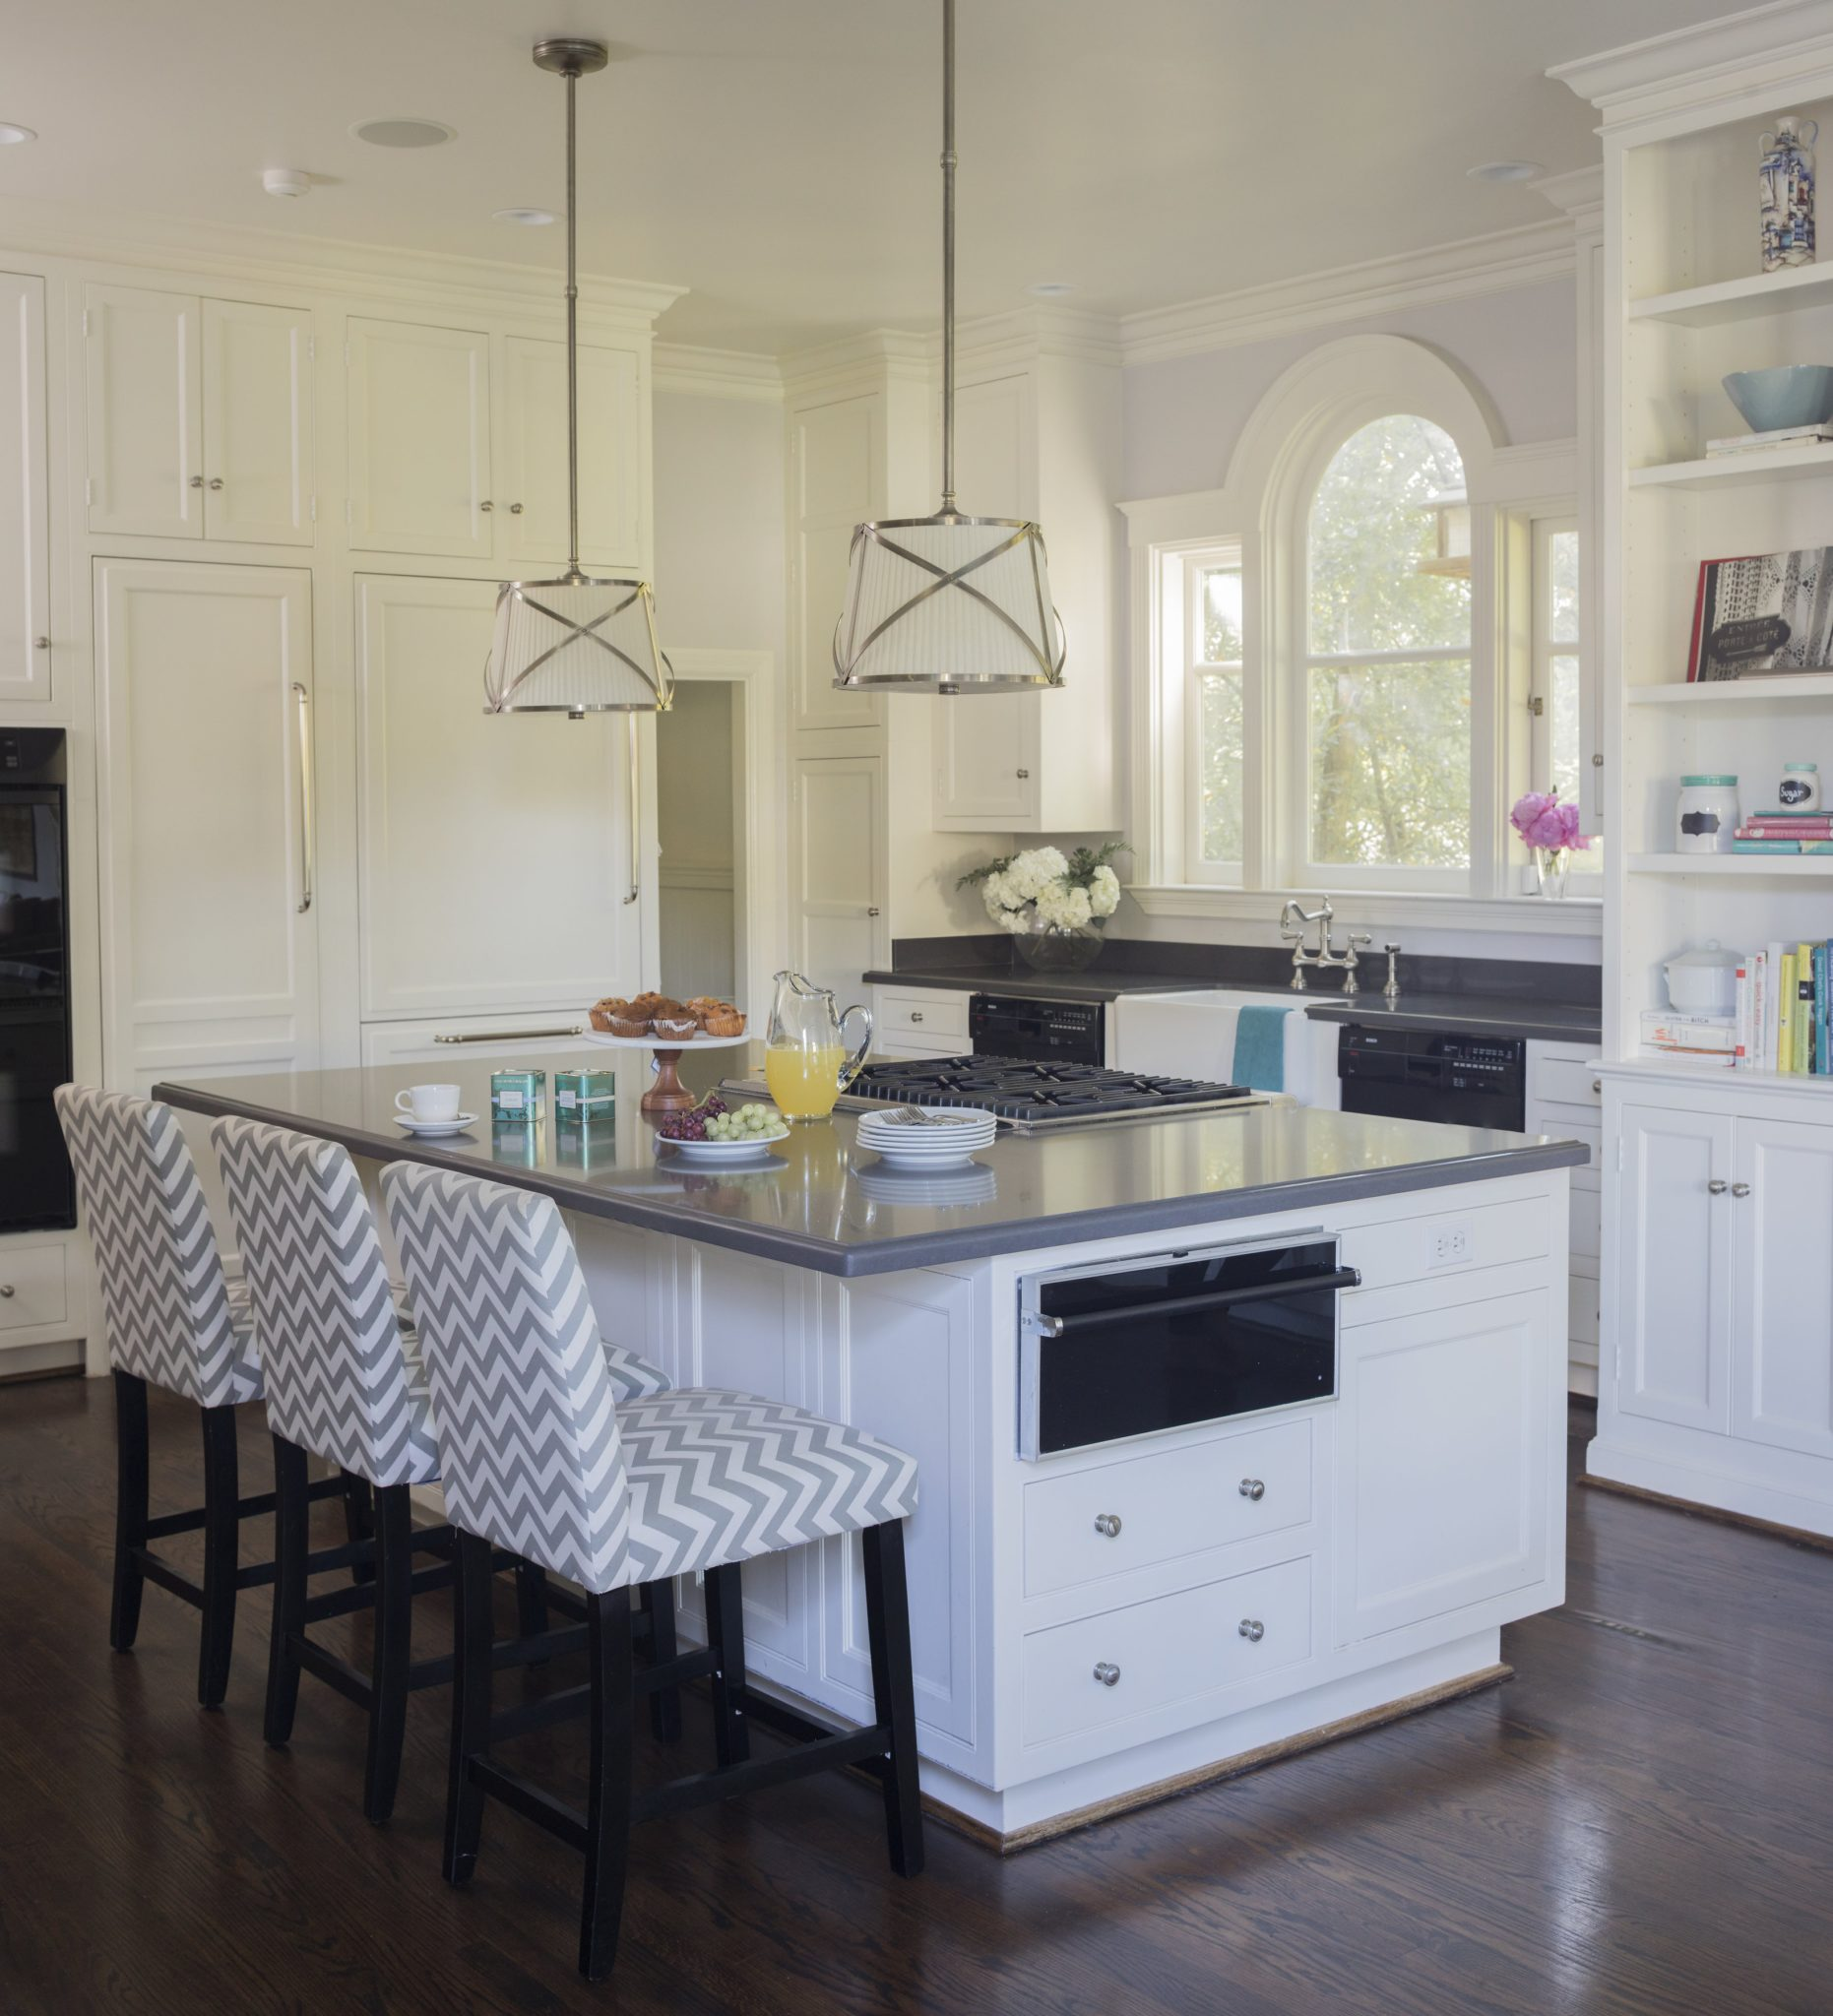 Eat In Kitchen with Chevron Stools and Center Island by McBrien Interiors